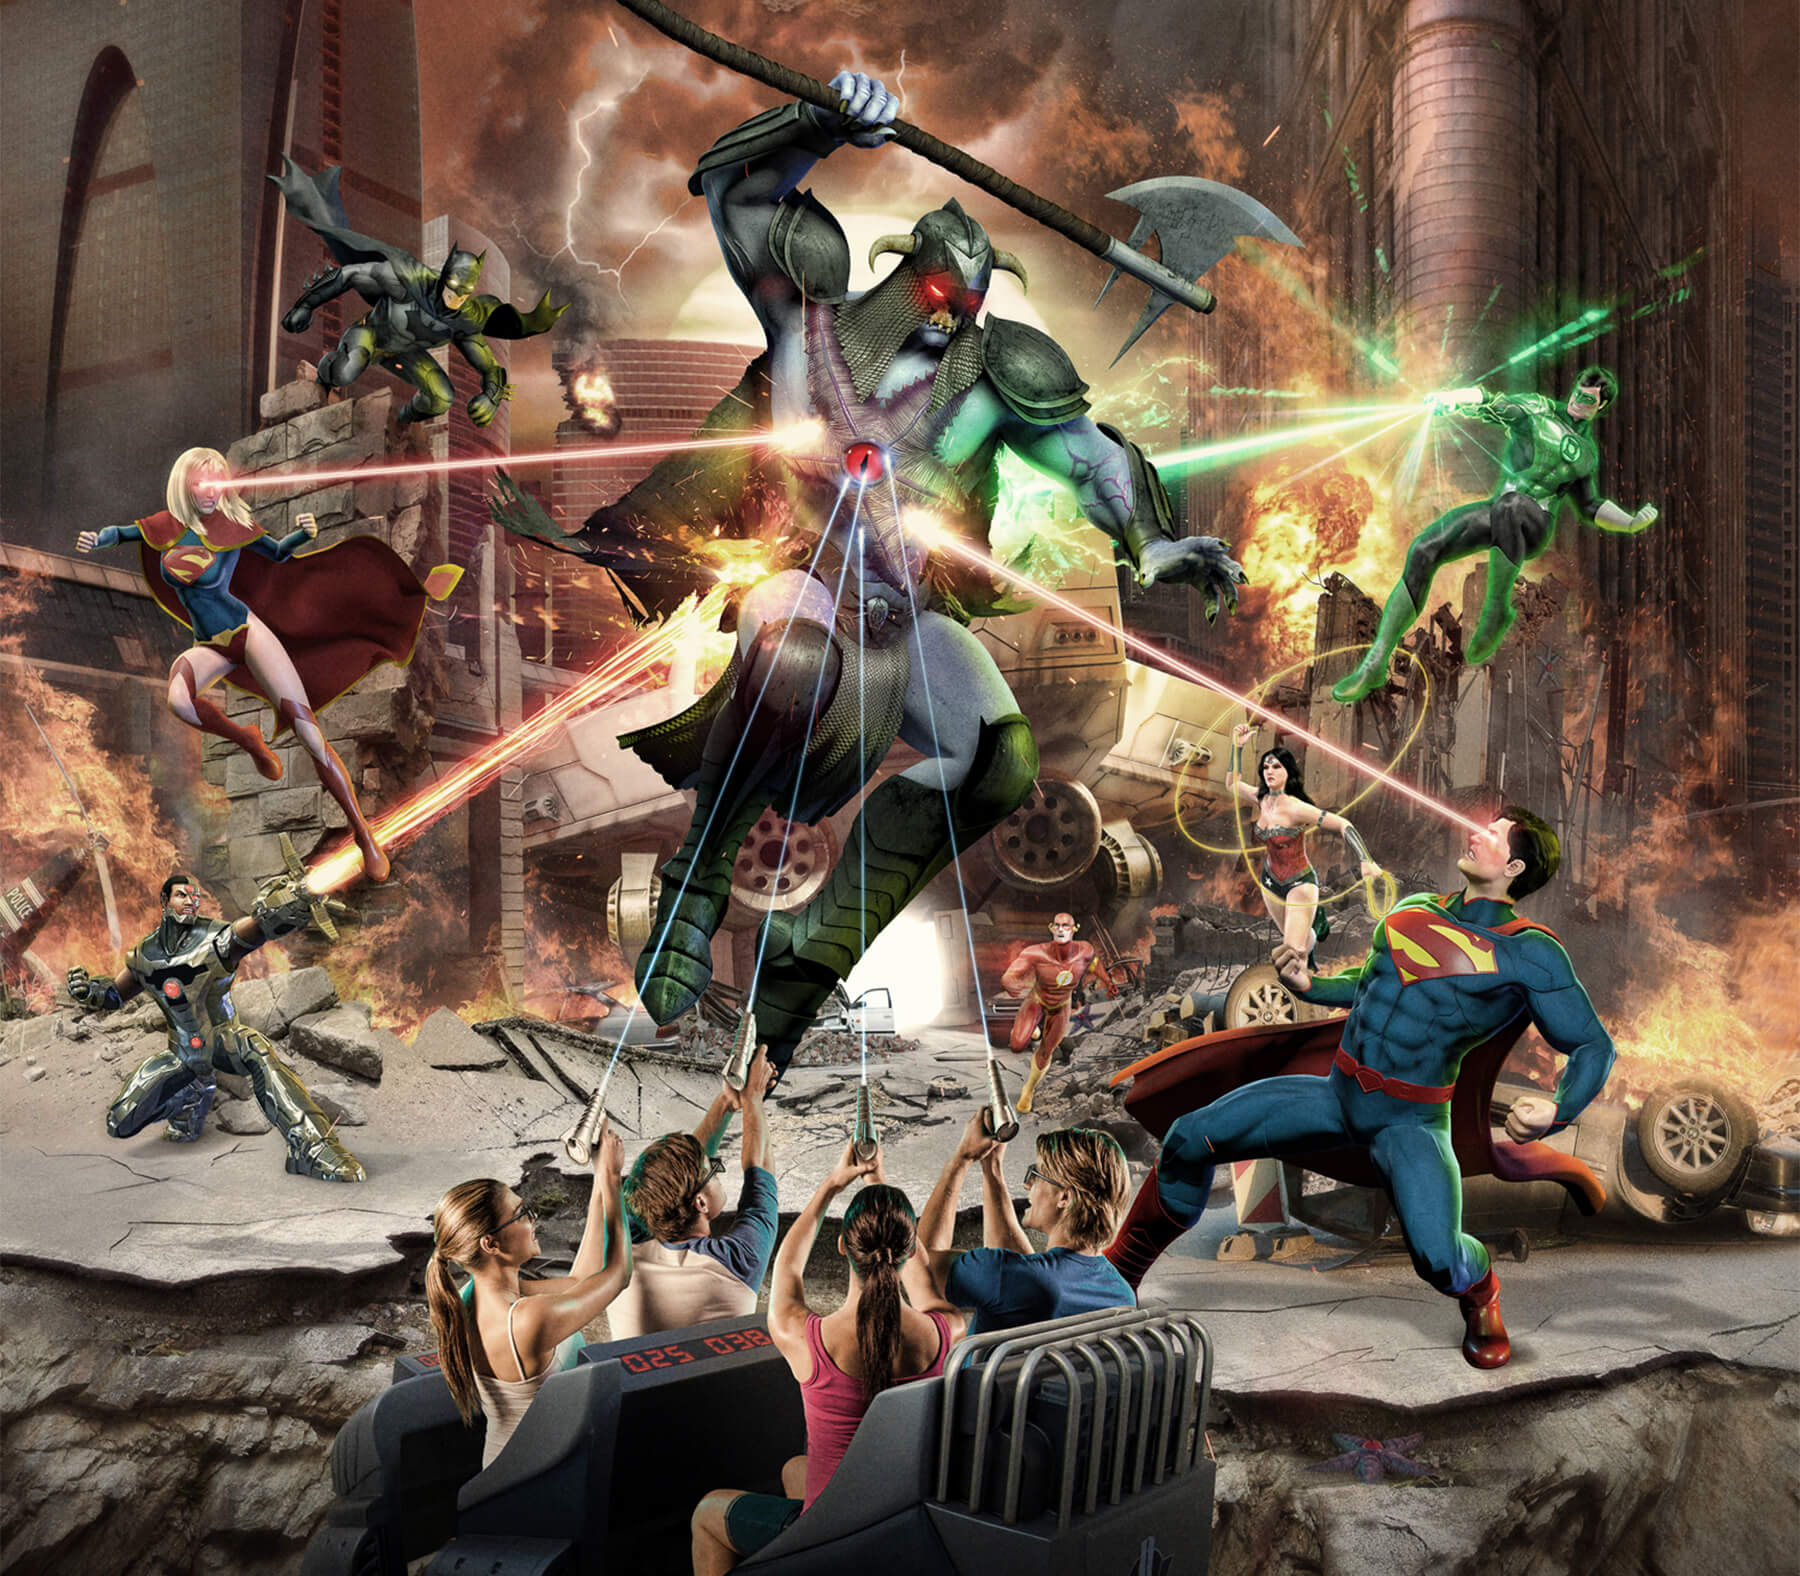 JUSTICE LEAGUE: Alien Invasion